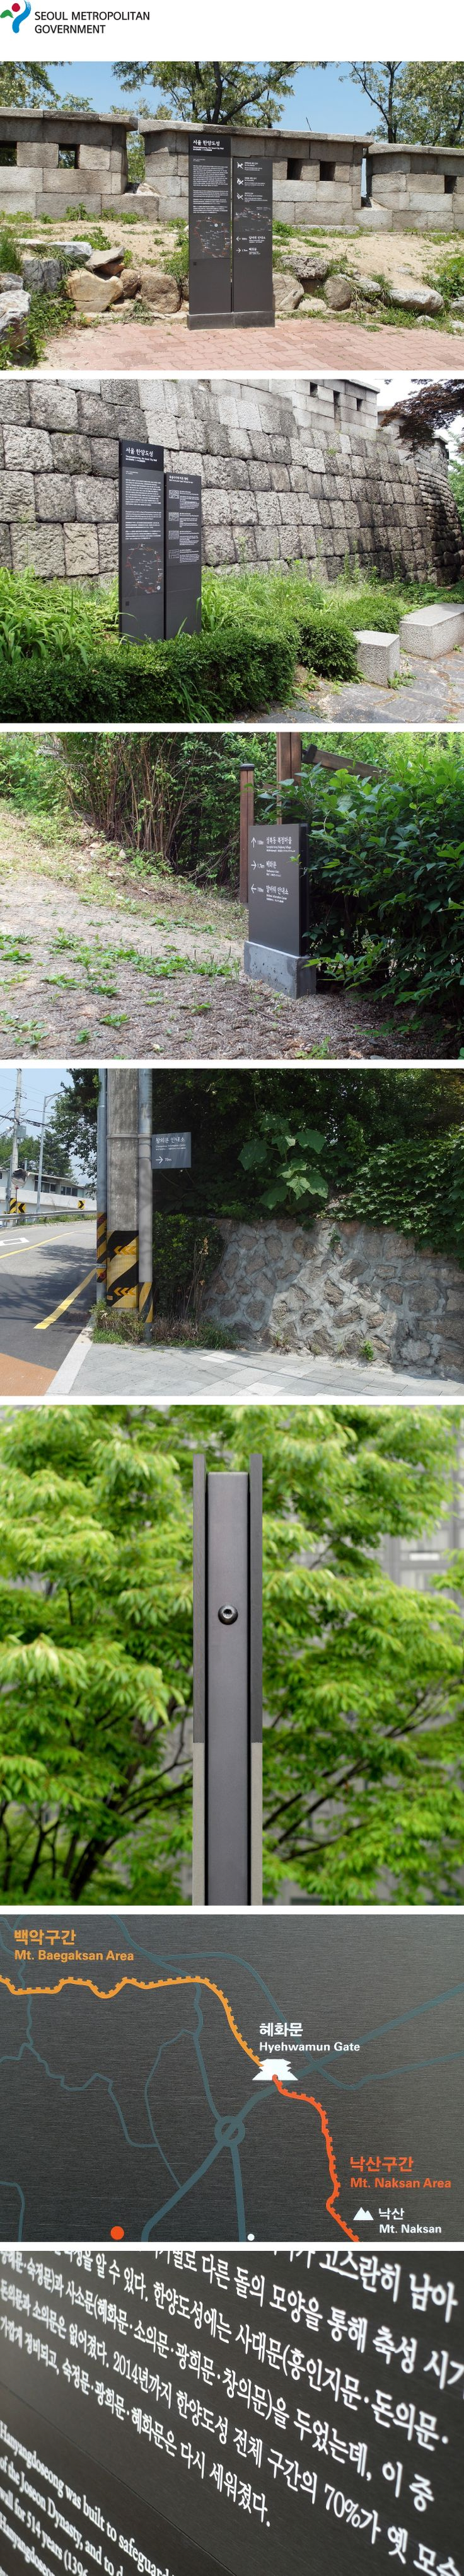 Seoul City Wall Signage System http://atelierdesign.kr